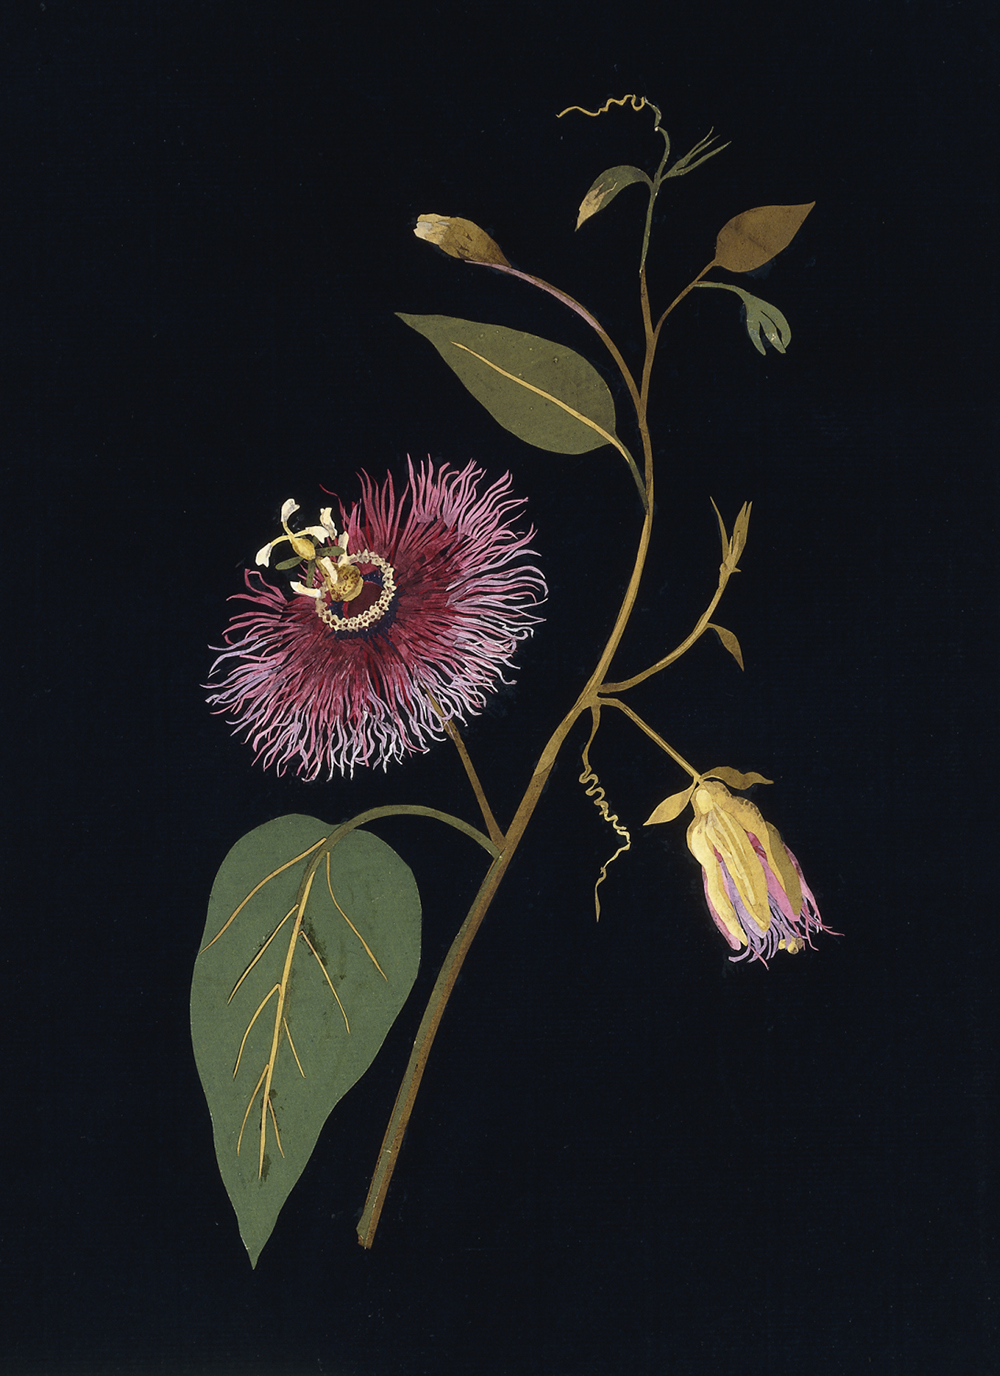 Mary Delany. Passiflora Laurifolia (Gynandria Pentandria). Collage of coloured papers, with bodycolour and watercolour, on black ink background, 1777.